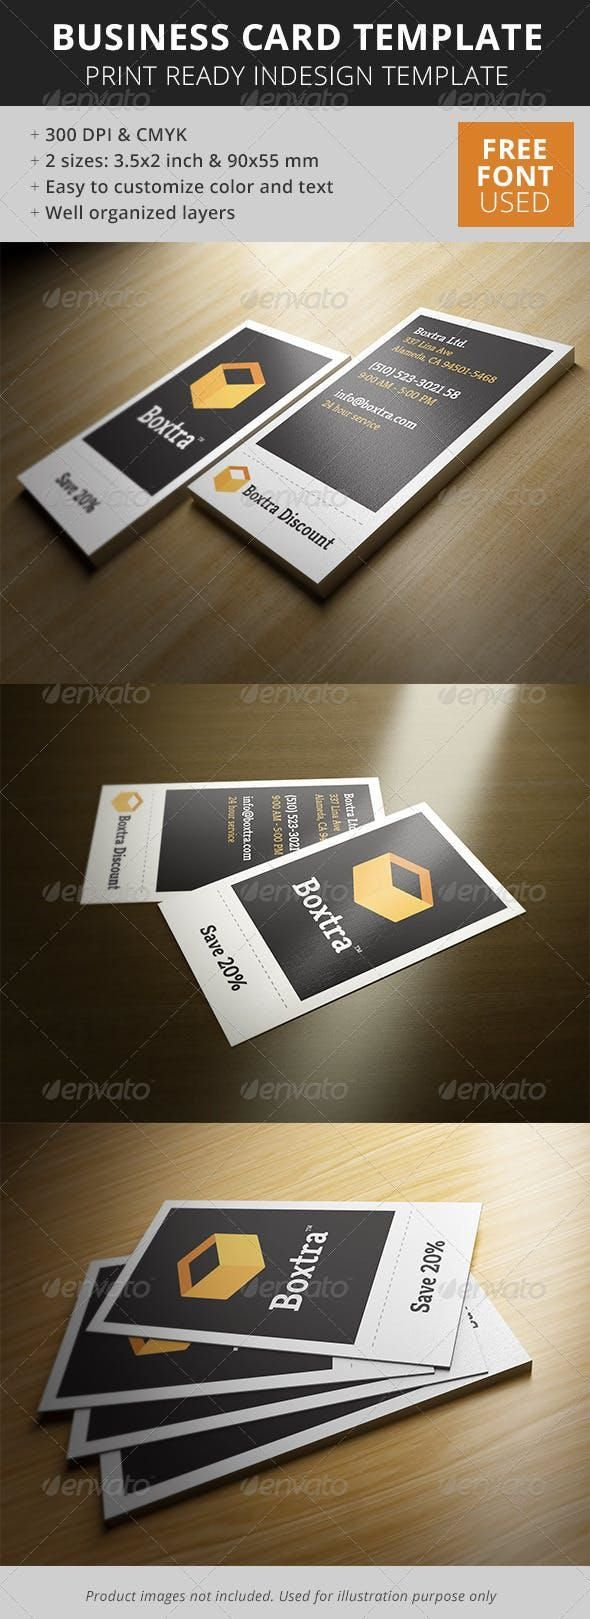 Boxtra Business Card Businesscards Graphicresources Businesscard Printtemplates Designresources Business Card Mock Up Cool Business Cards Business Cards